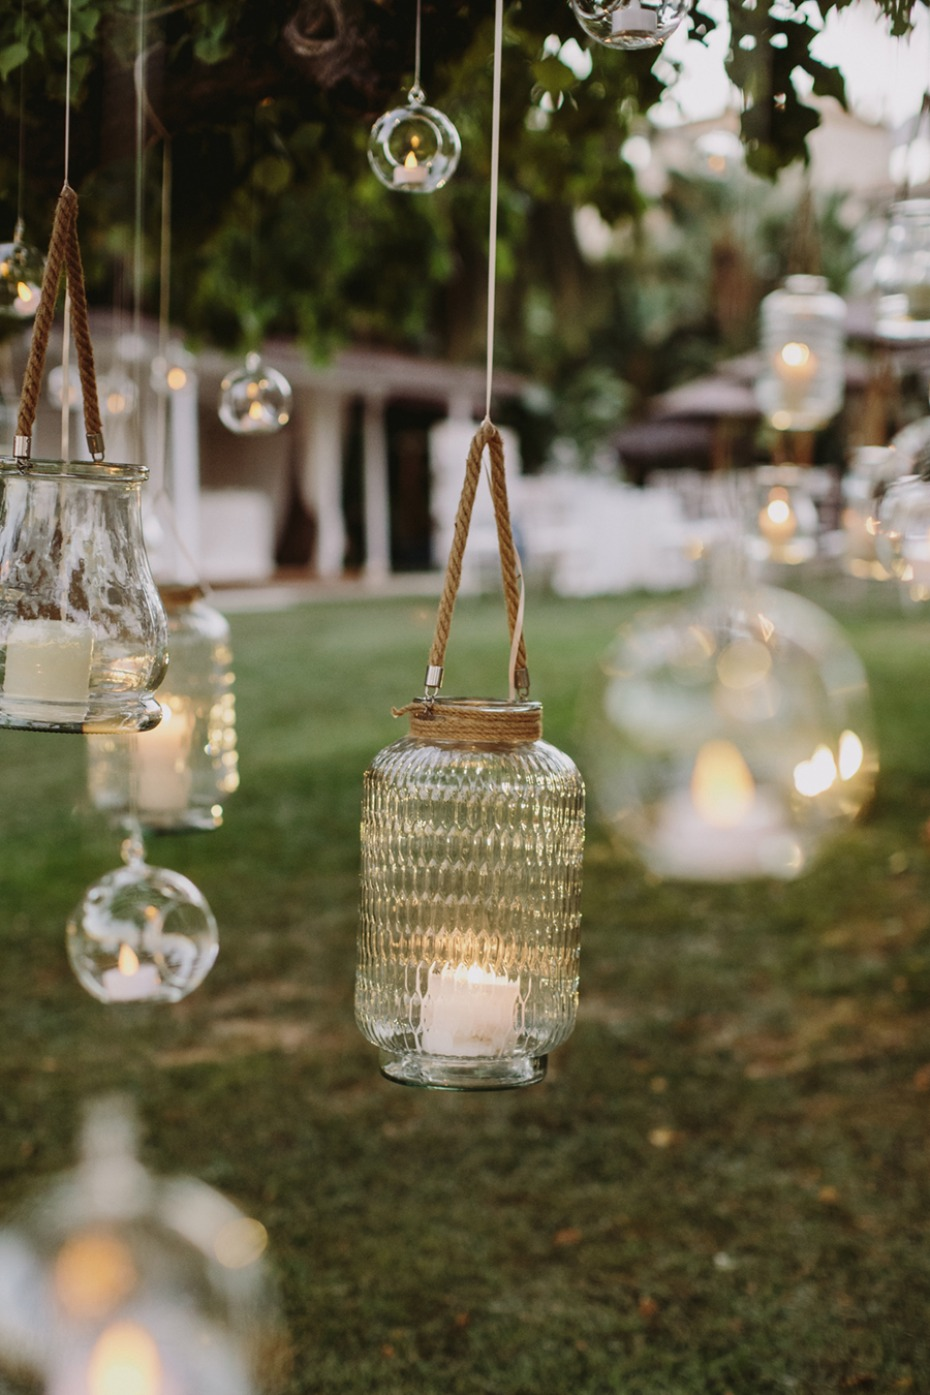 glowing and hanging lanterns in a tree